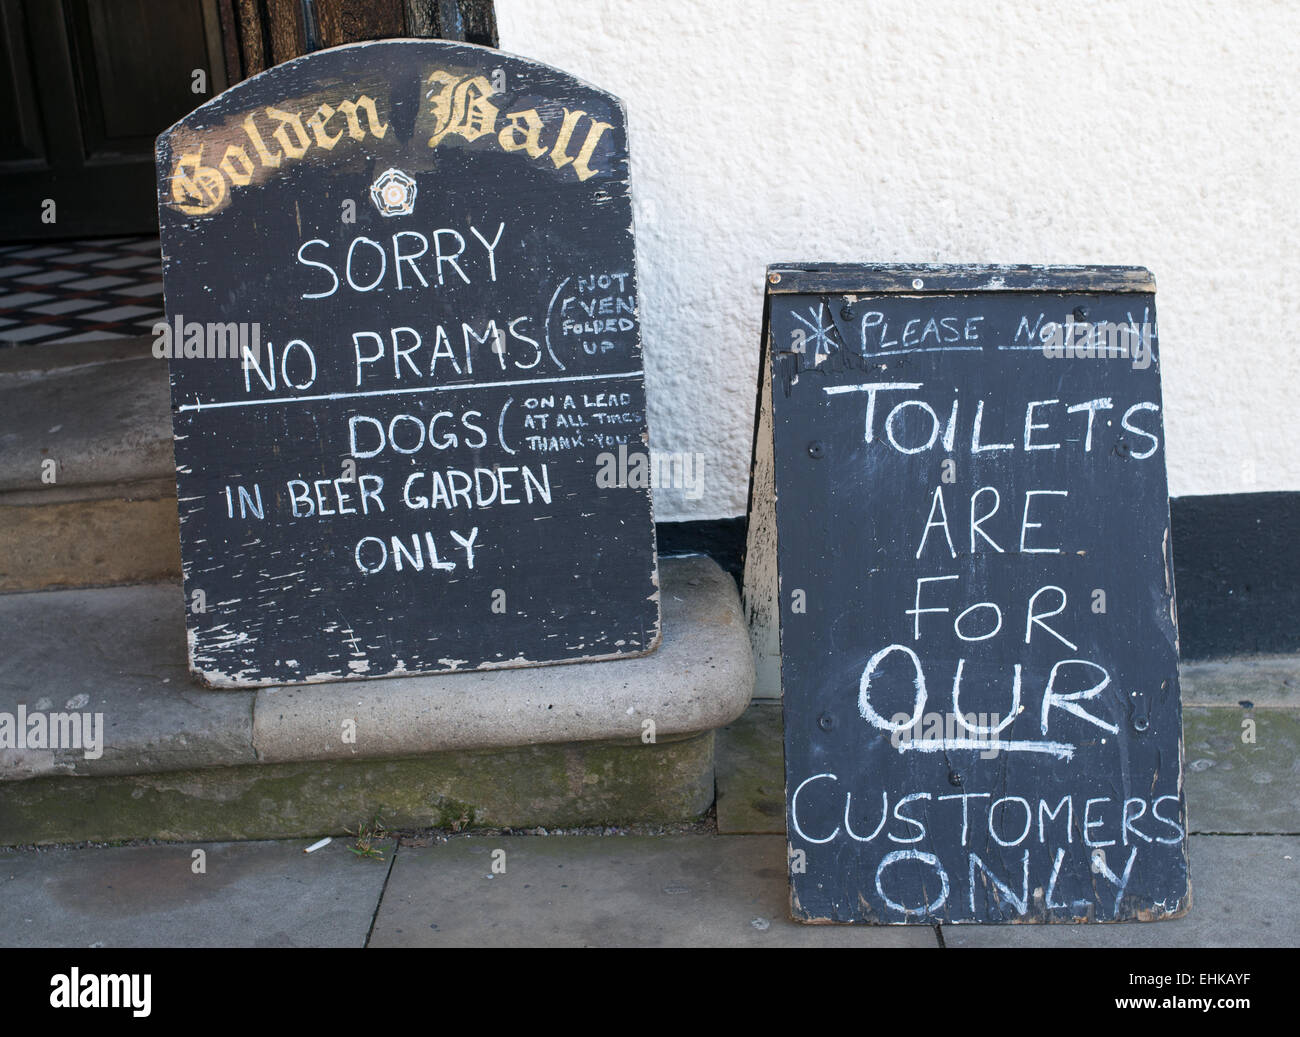 unwelcoming-signs-outside-the-golden-bal